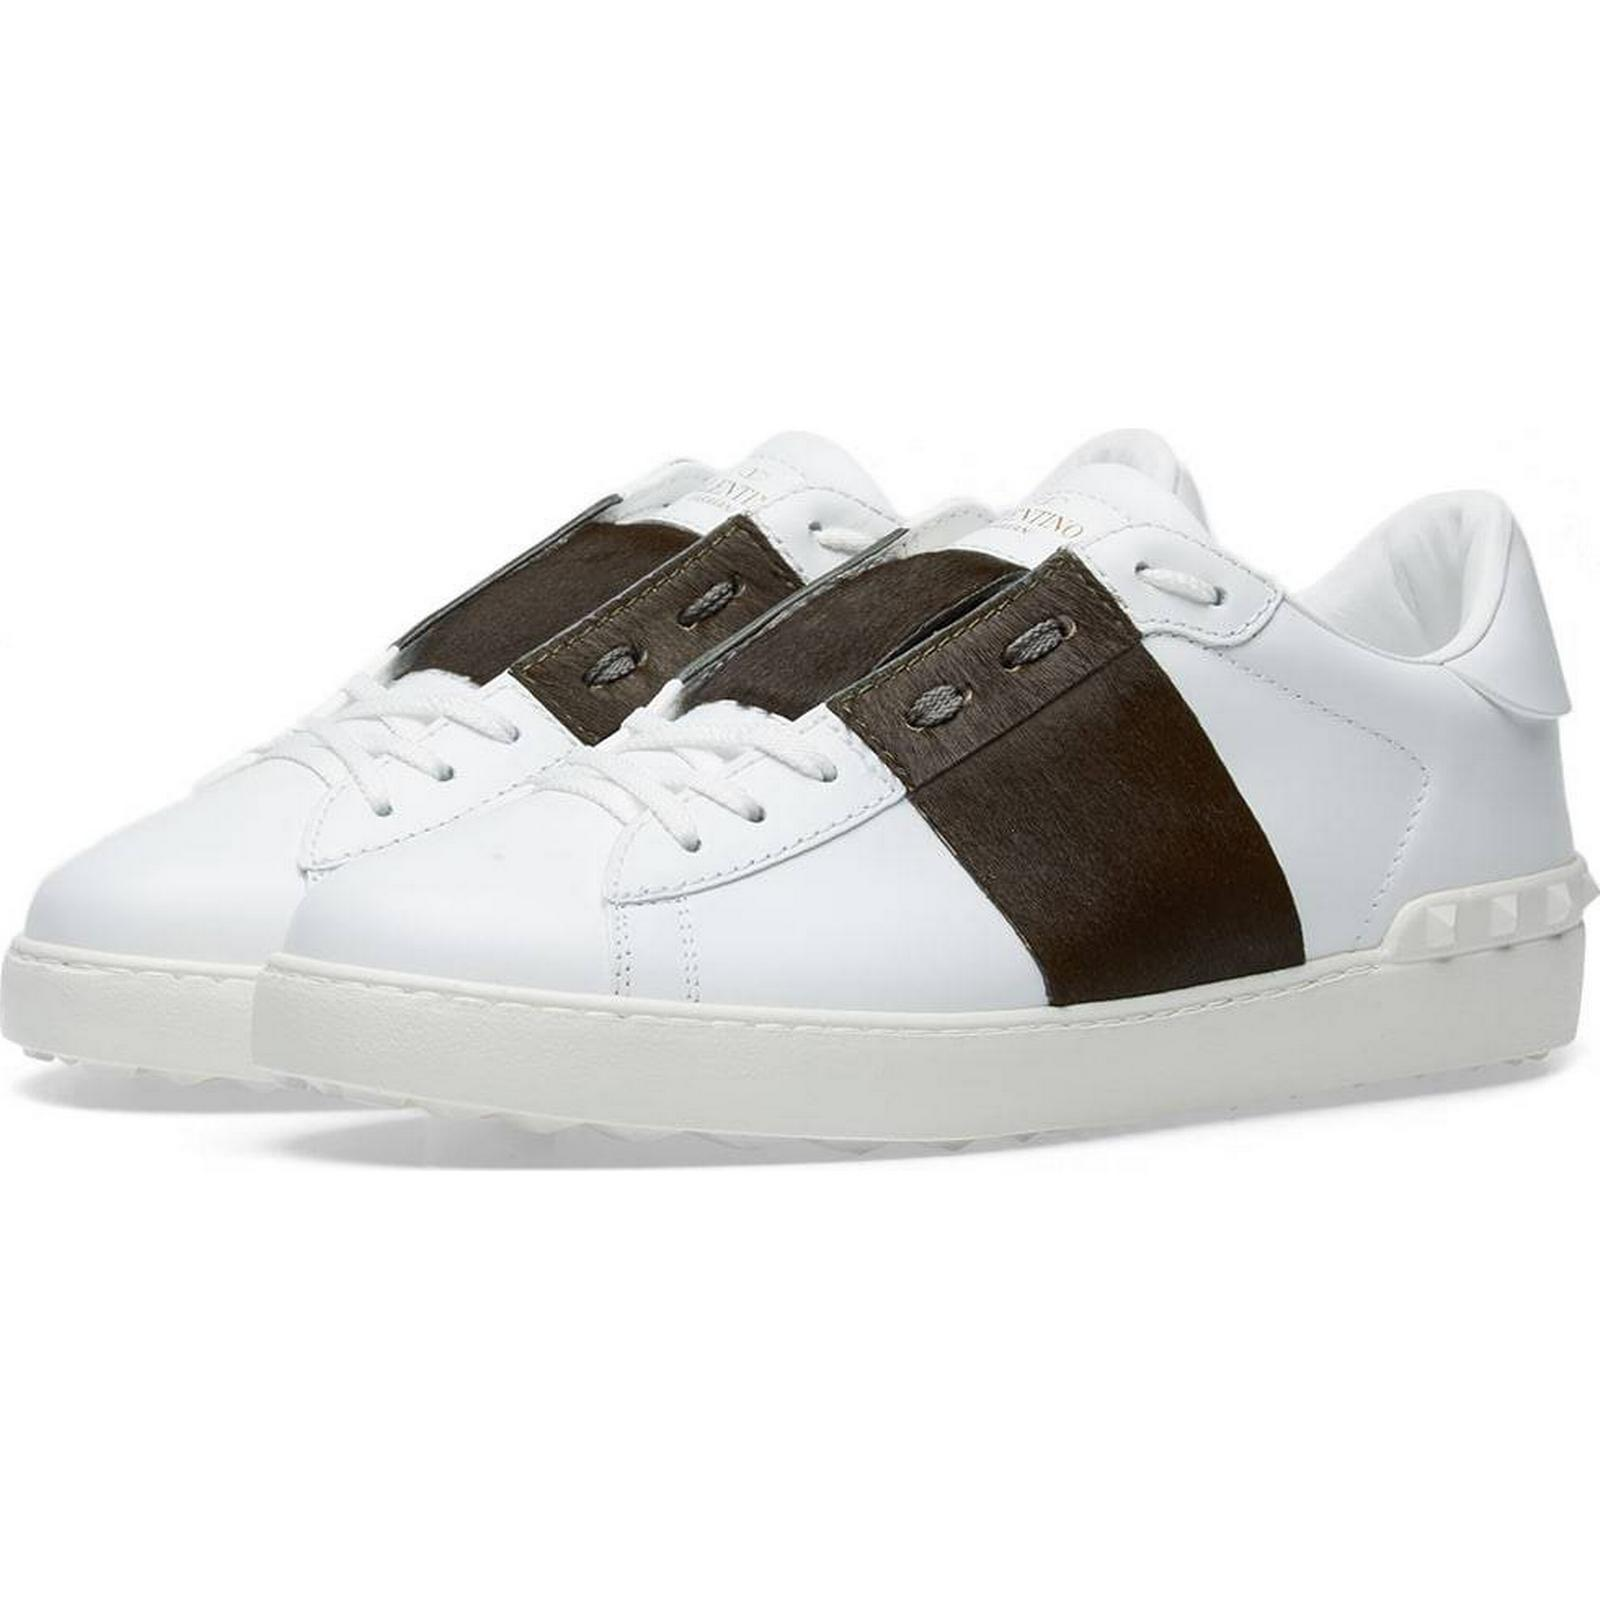 Valentino Pony Skin White:Mr/Ms: Open Low Top Sneaker White:Mr/Ms: Skin Complete specifications 2d5646